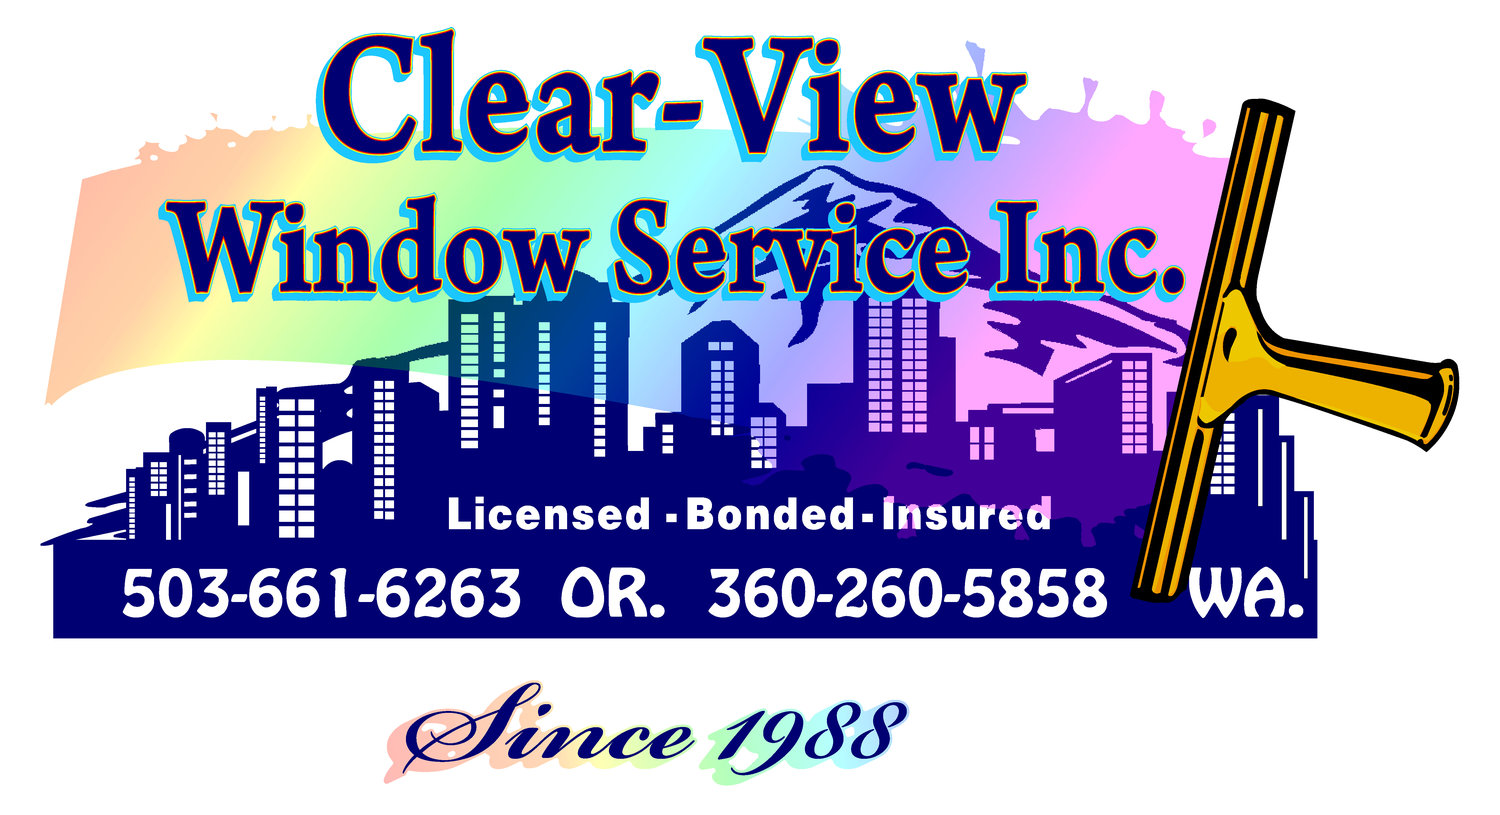 Clear-View Window Service Inc.